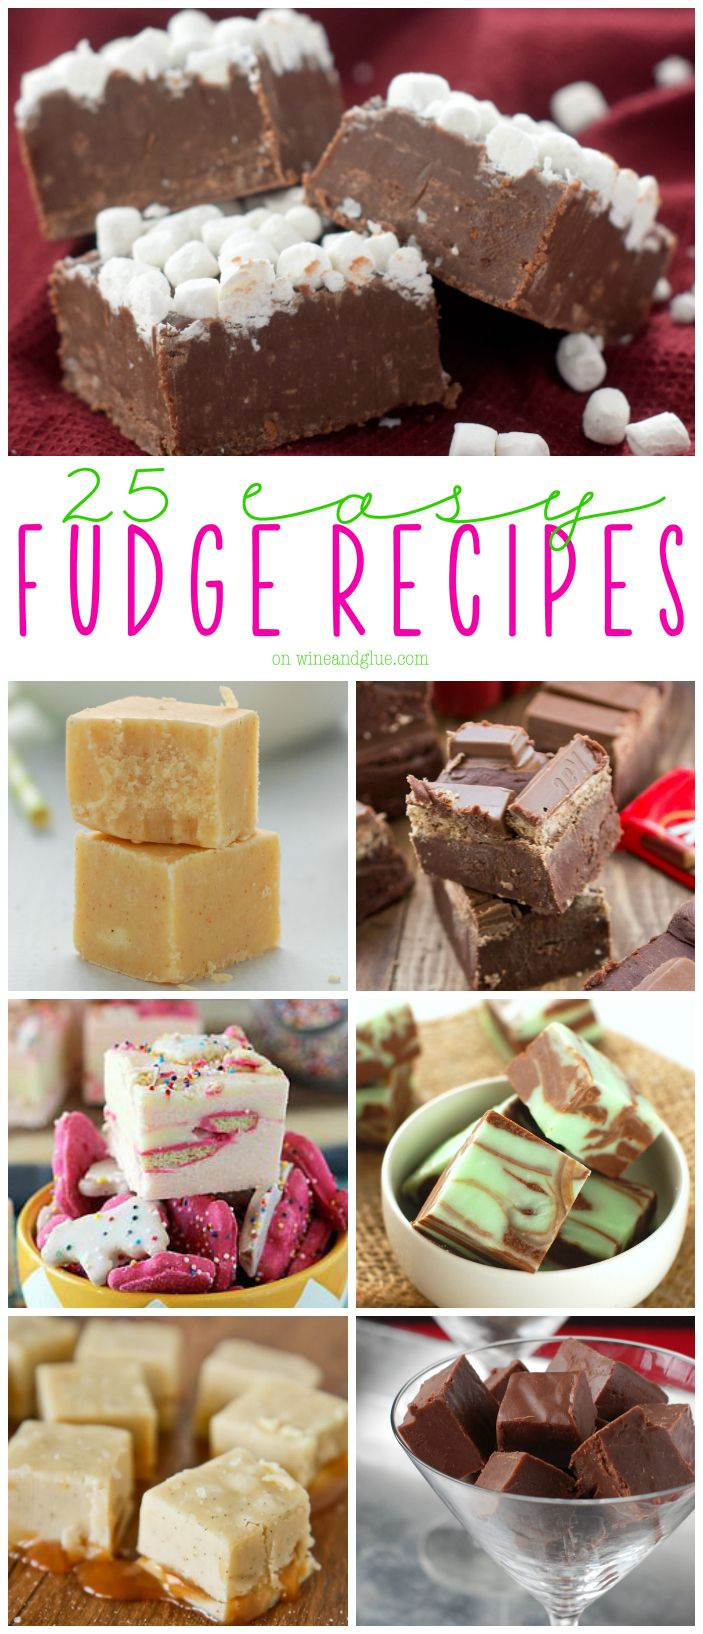 25 Easy Fudge Recipes | Fudge recipes that come together fast and are unique and delicious!